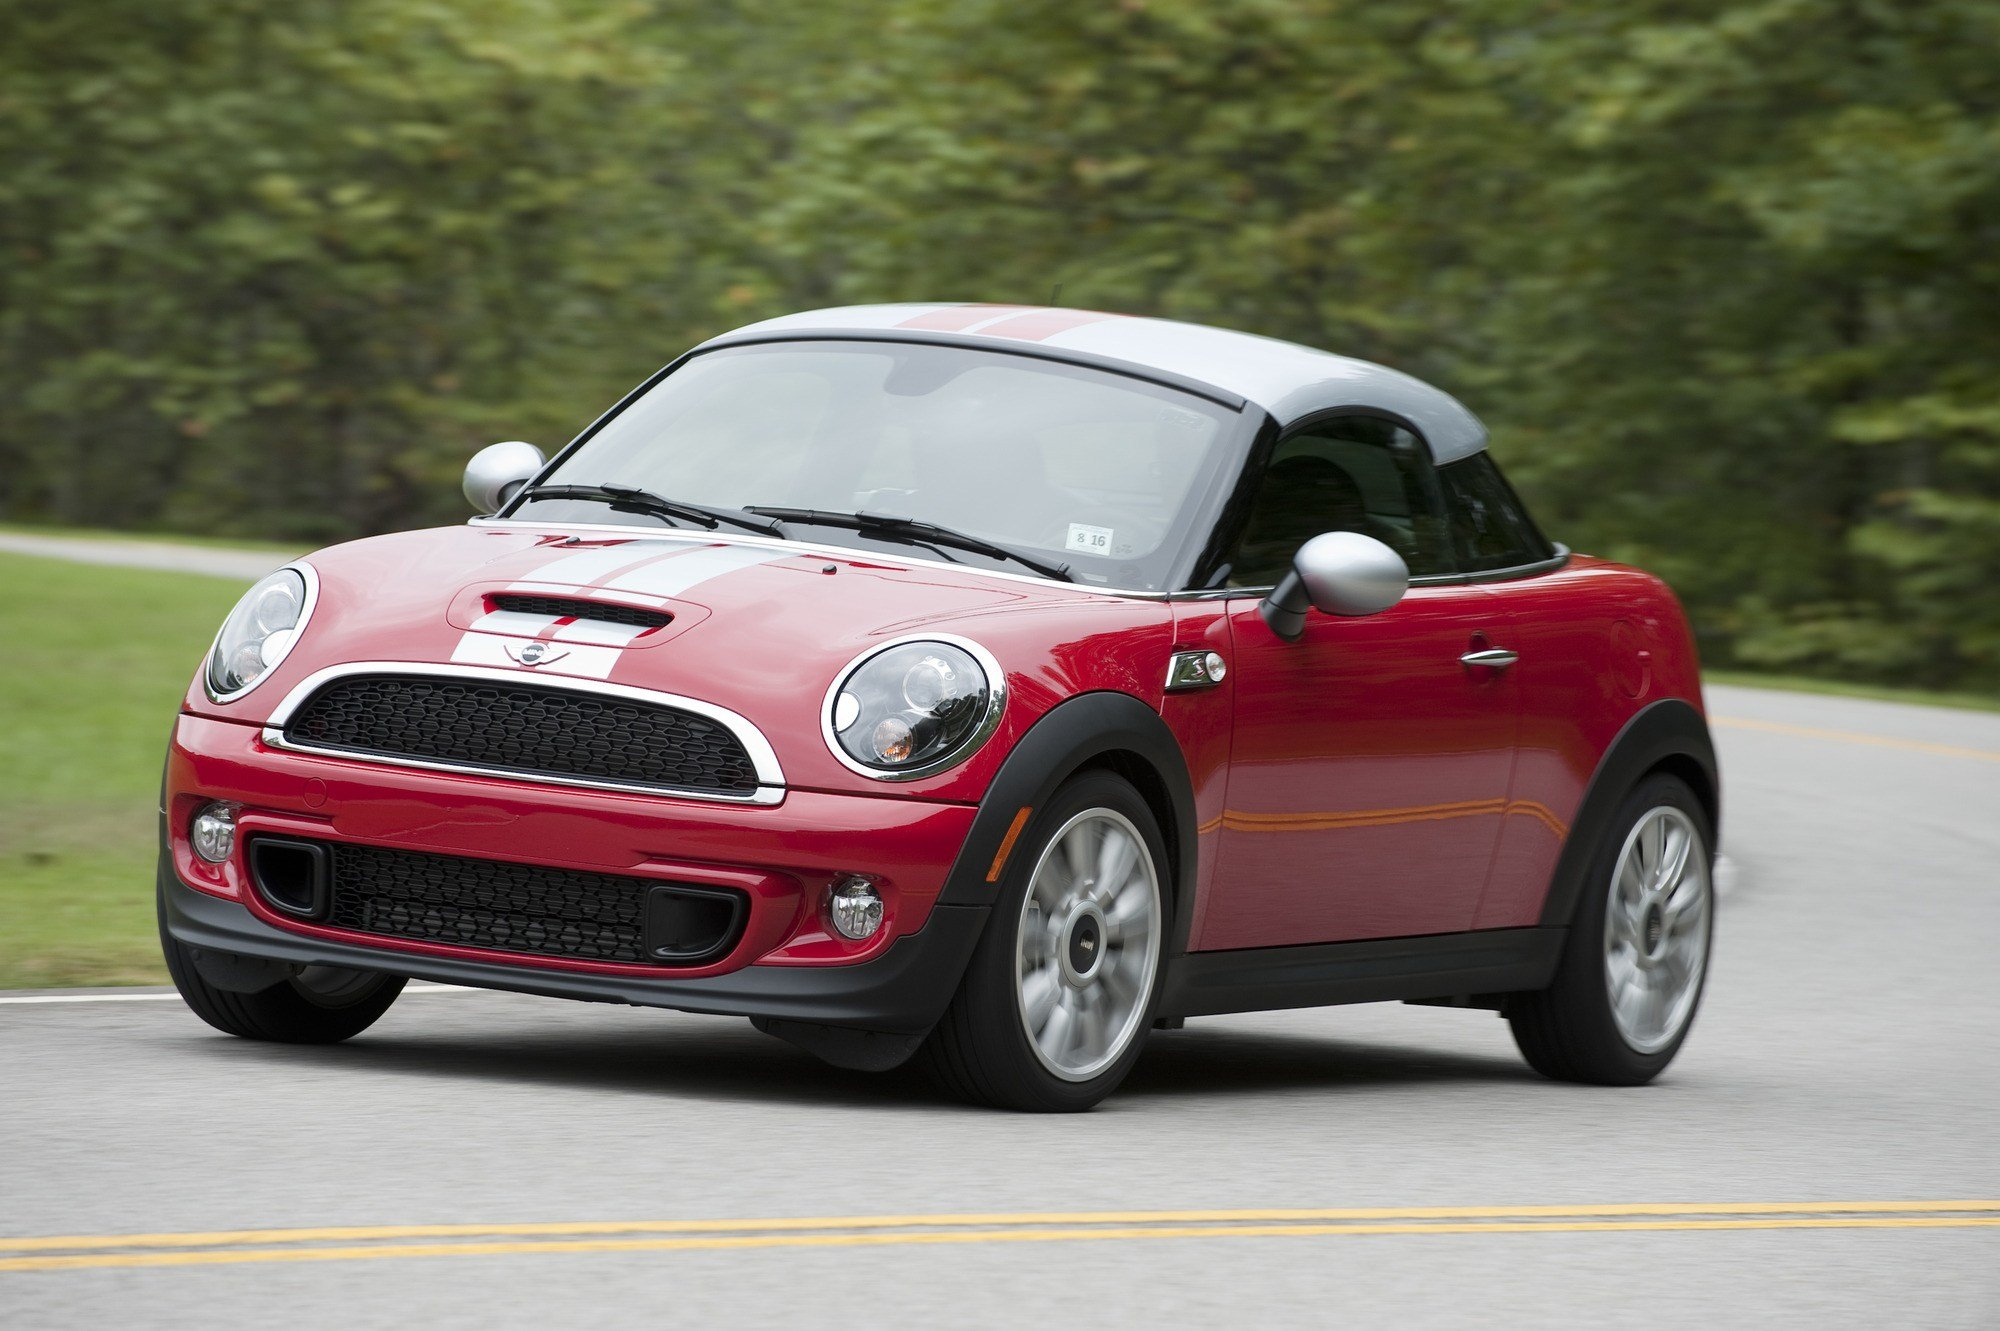 New Mini Coupe And Roadster Going Away To Make Room For New On This Month